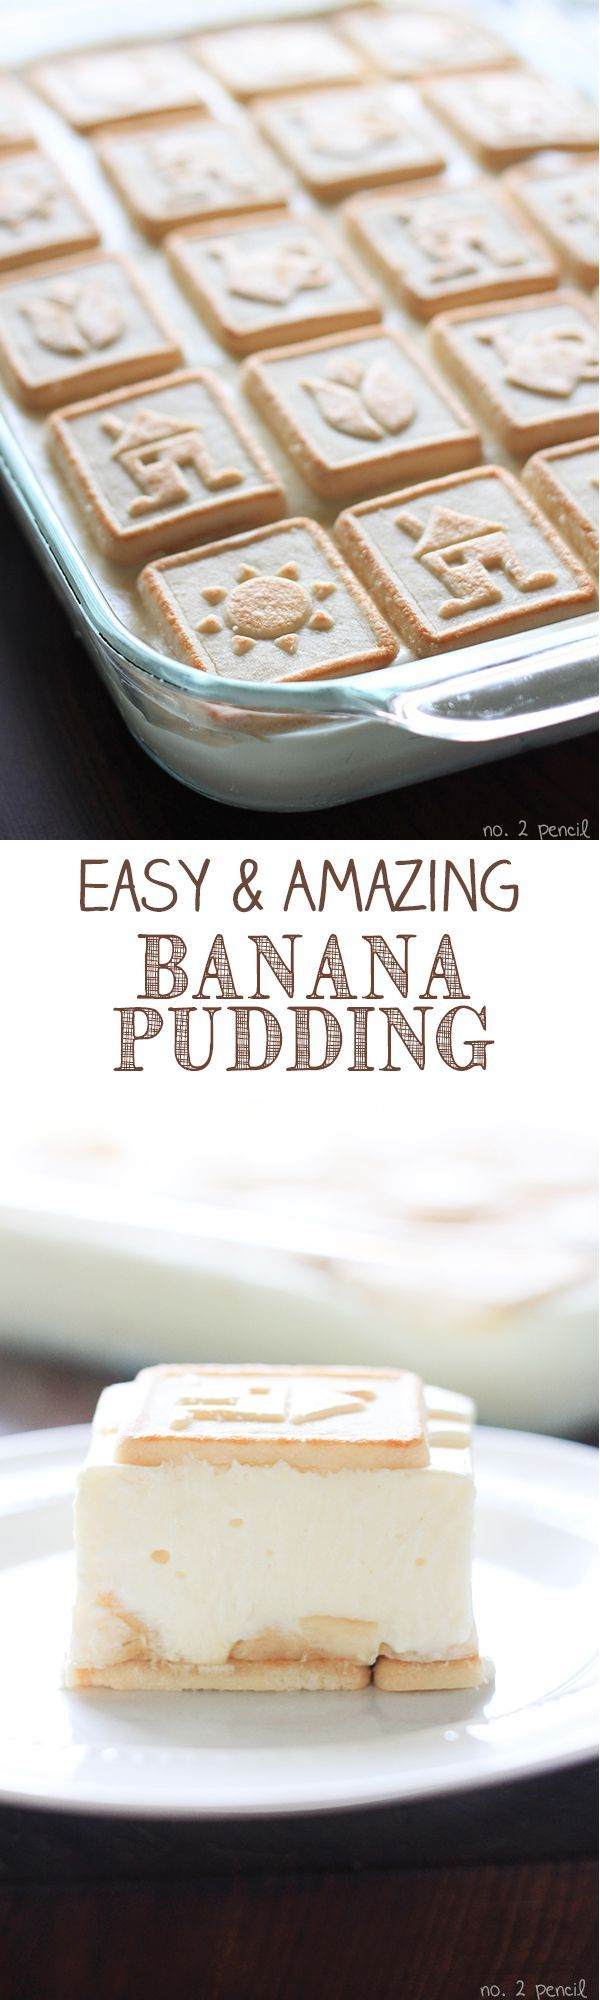 """Easy and Amazing Banana Pudding - pinner says """"everyone asks for this recipe!""""....(consistency more like mouse than pudding...can use nila wafer to layer instead of chessman...brush banana layer with lemon juice to keep it looking fresh if making ahead of time)"""